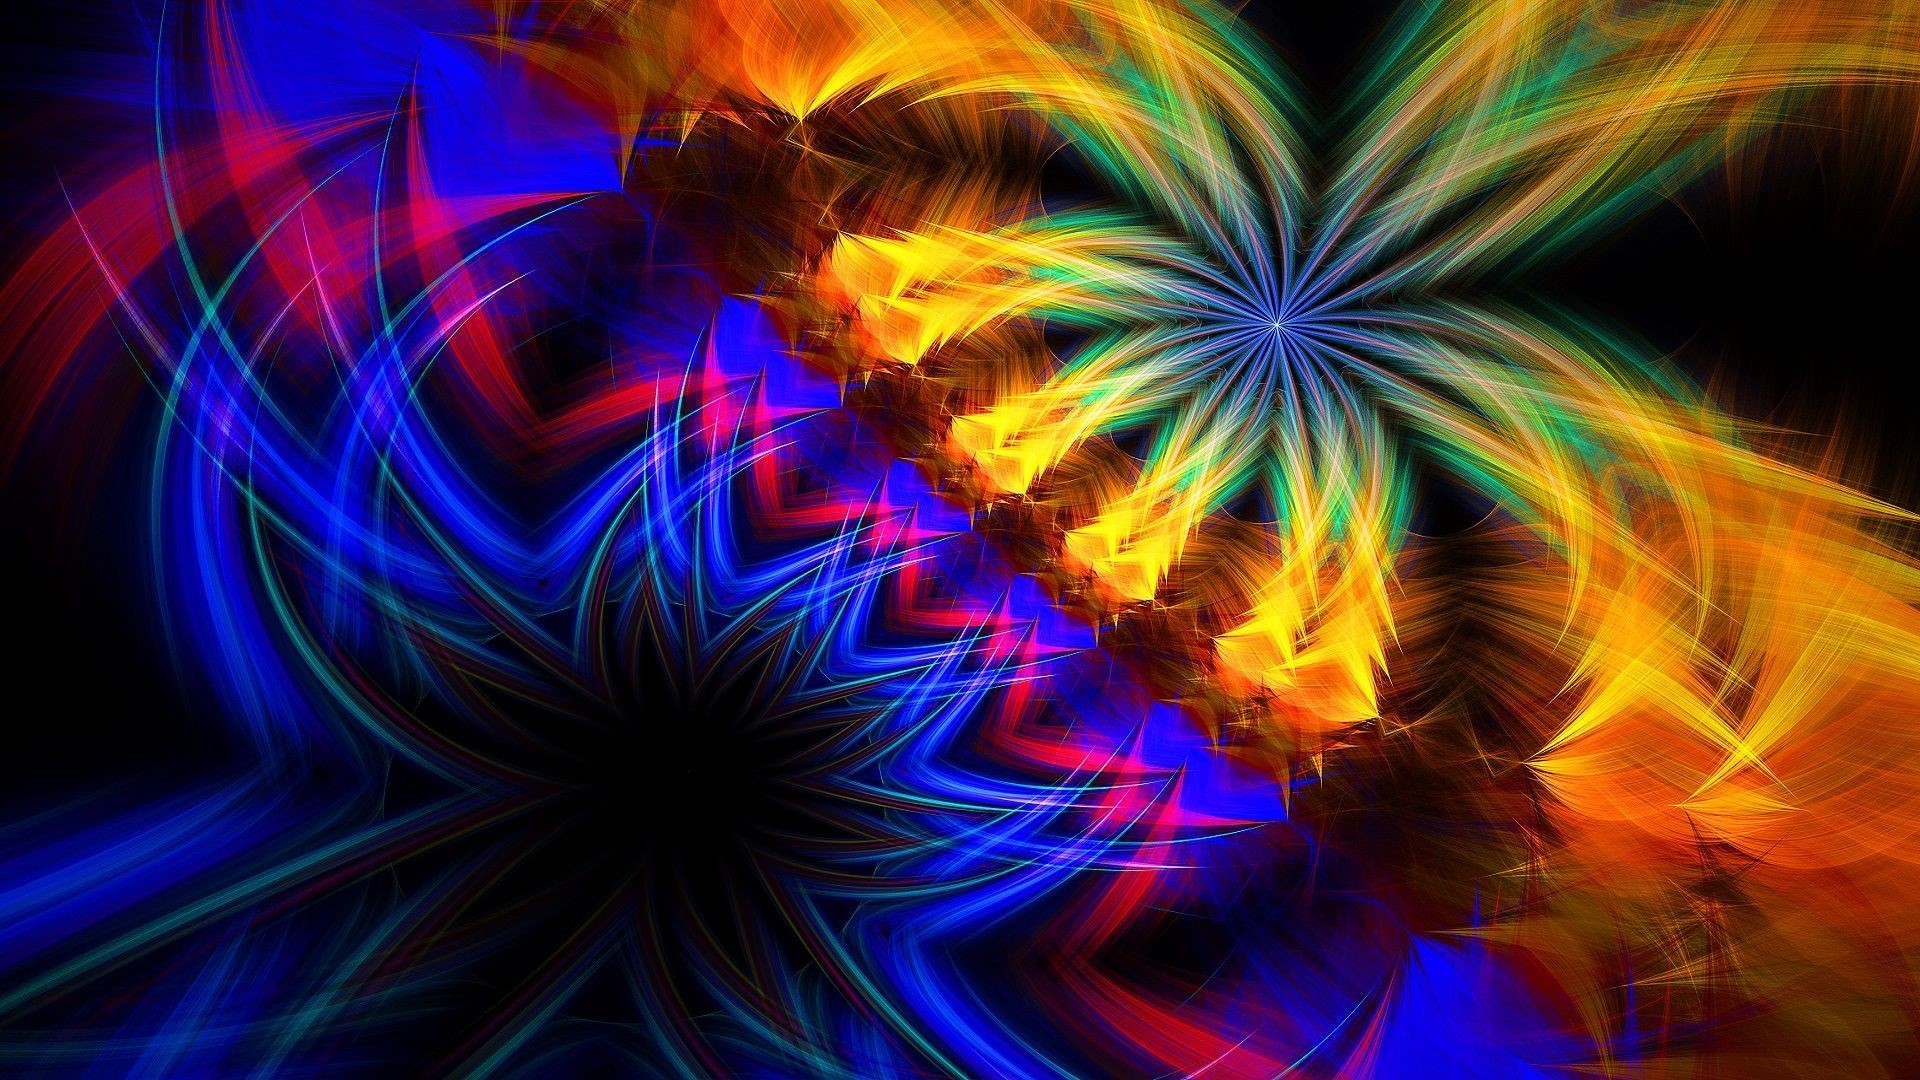 1920x1080 Multicolored fractals HD Wallpaper